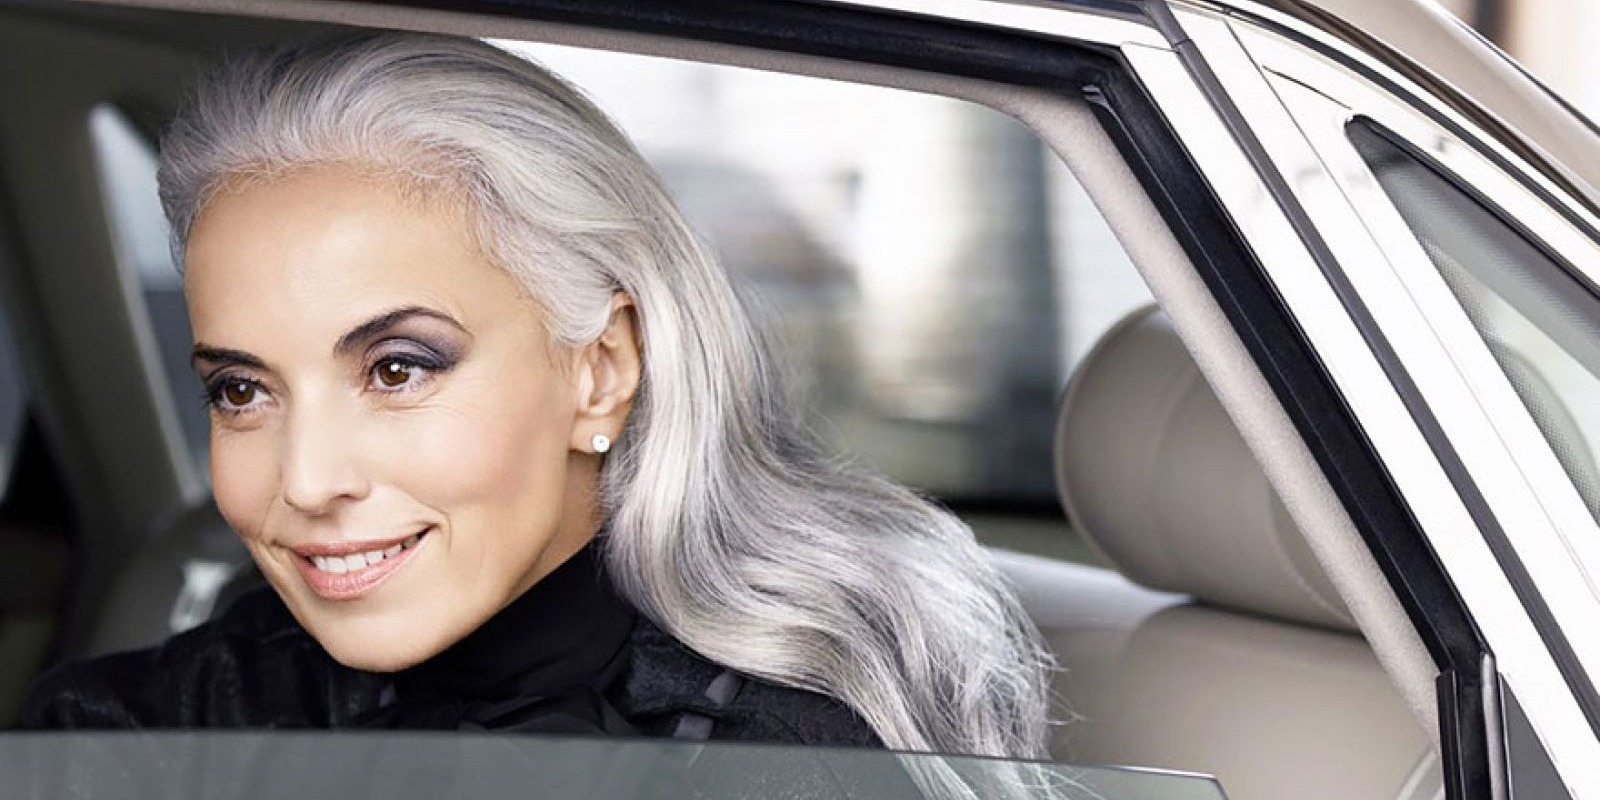 Meet the 60-year-old model disrupting ageing